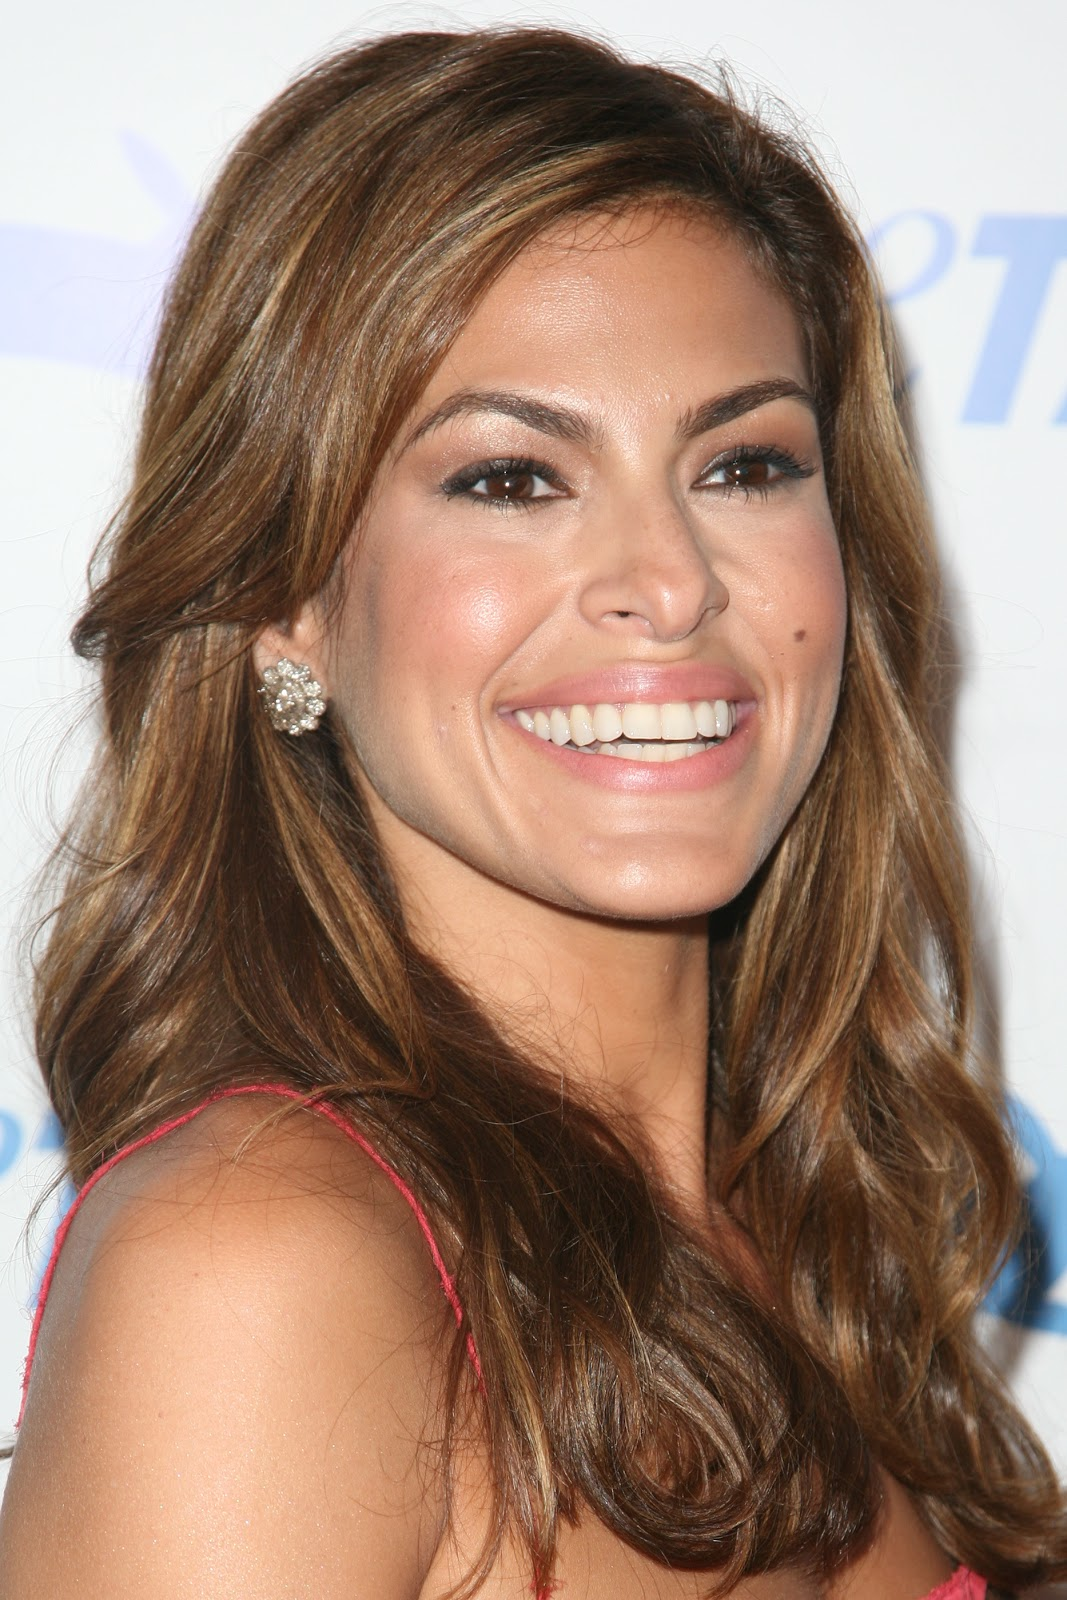 14 best images about Eva Mendes on Pinterest | Sexy, Nice ... |Eva Mendes Hair Color